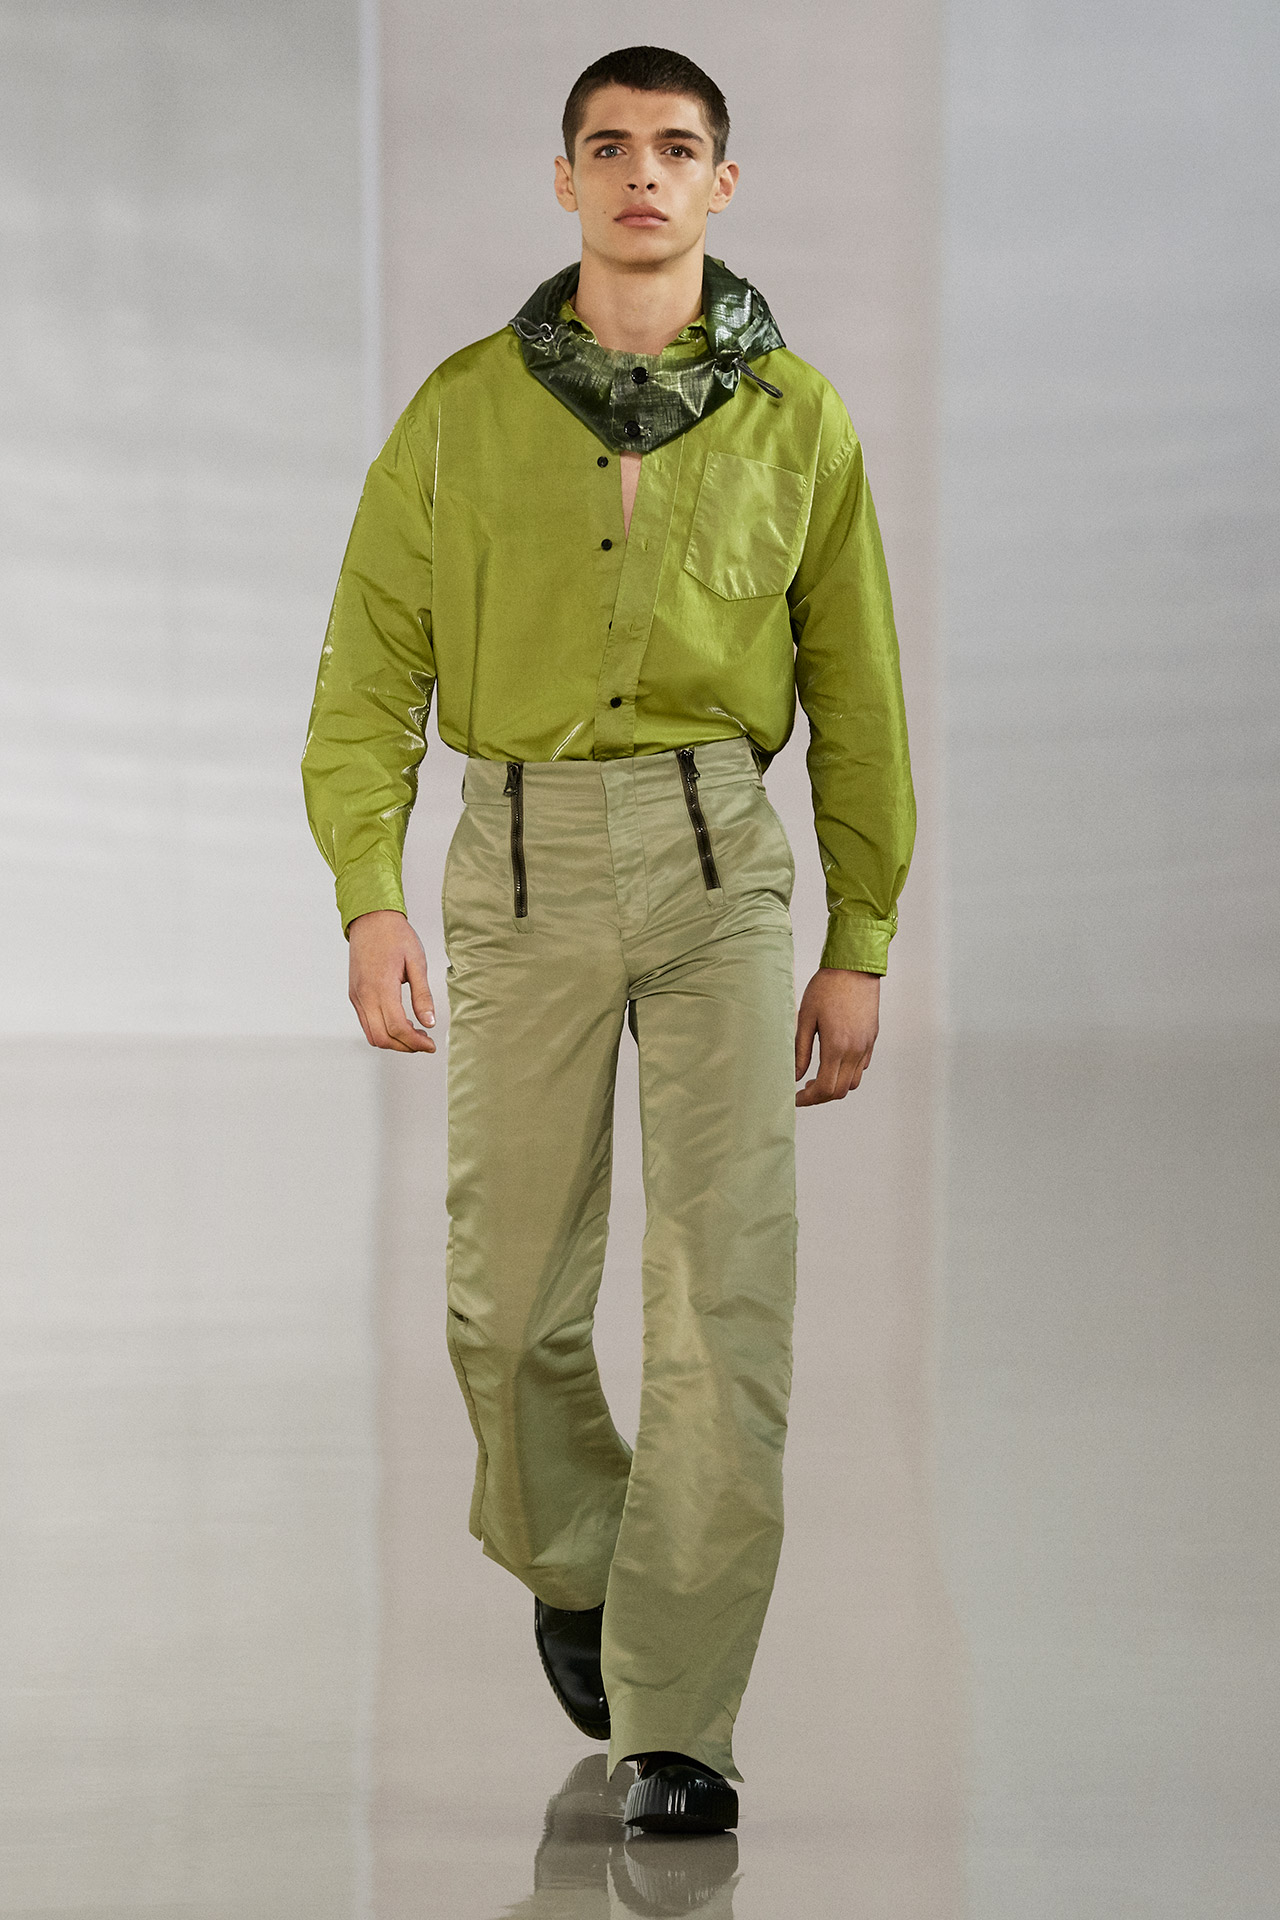 Look Fall/Winter 2020, image 3